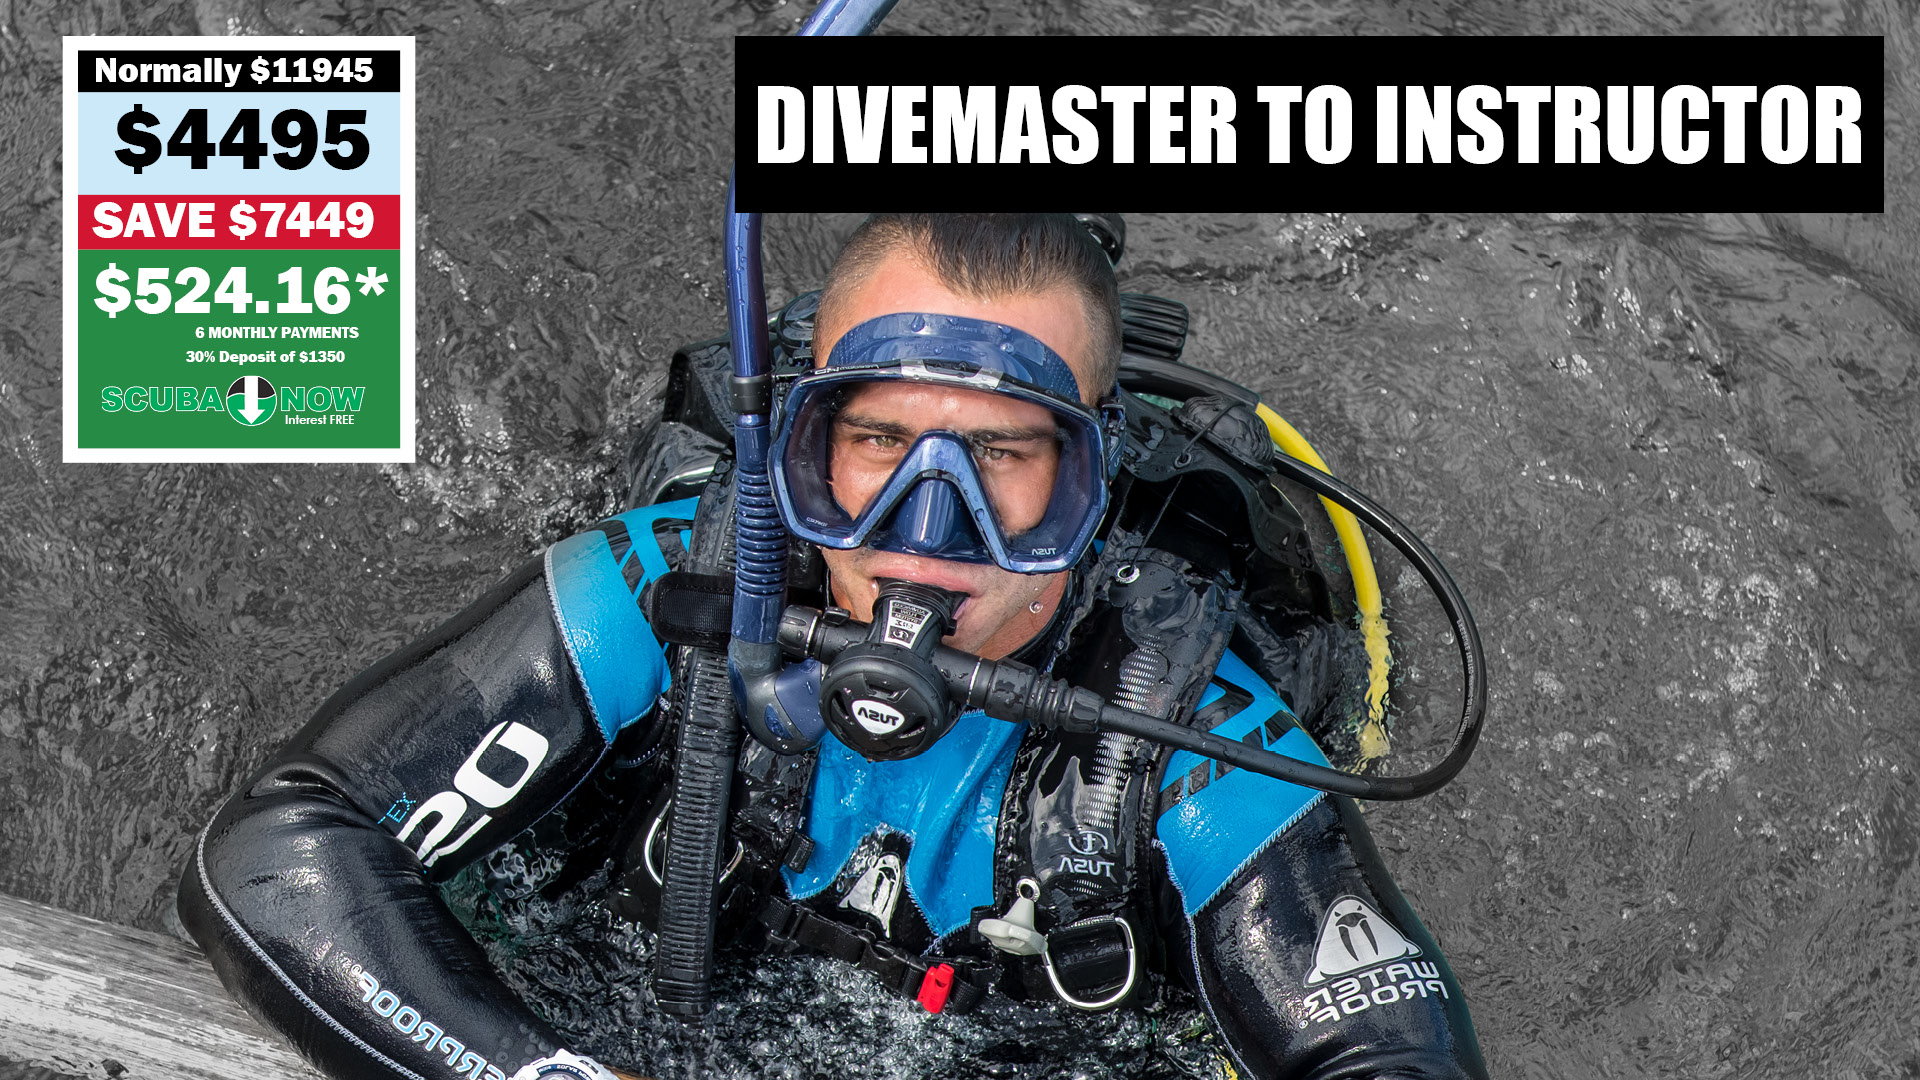 Divemaster to Instructor Traineeships